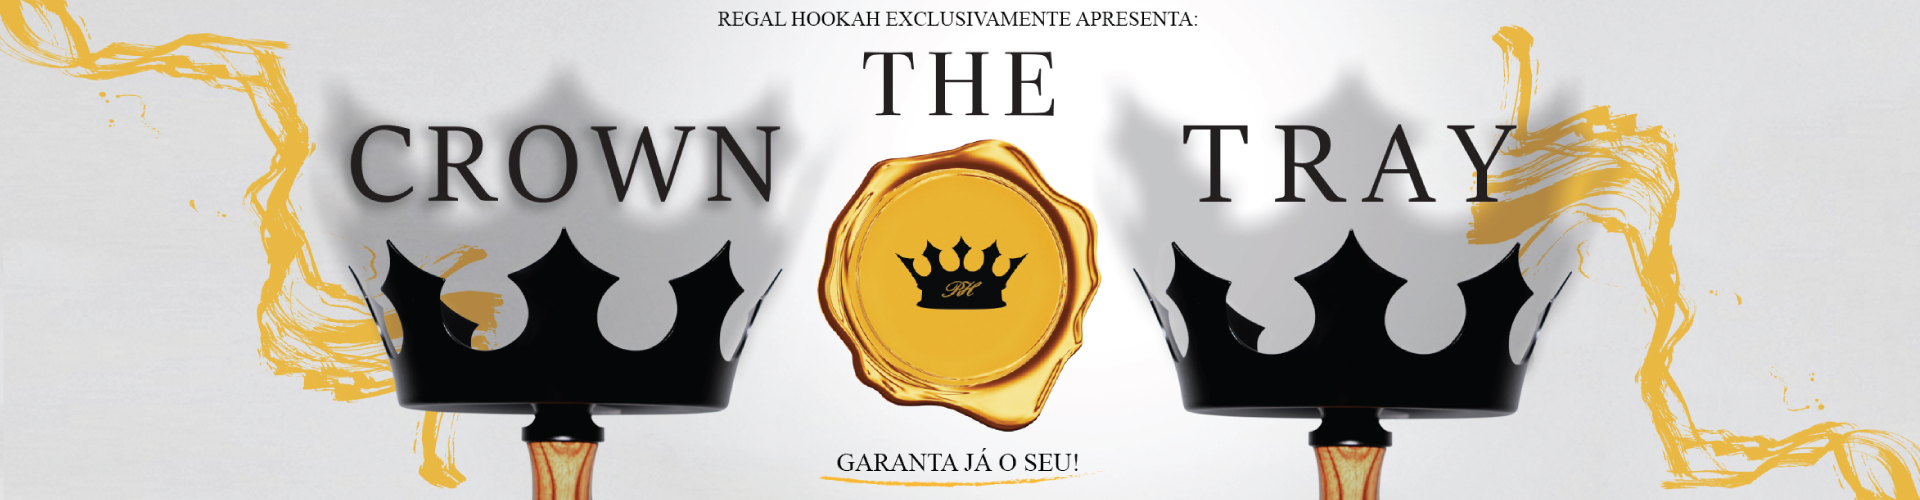 01_DESK_SETEMBRO_MASTER_CROWN